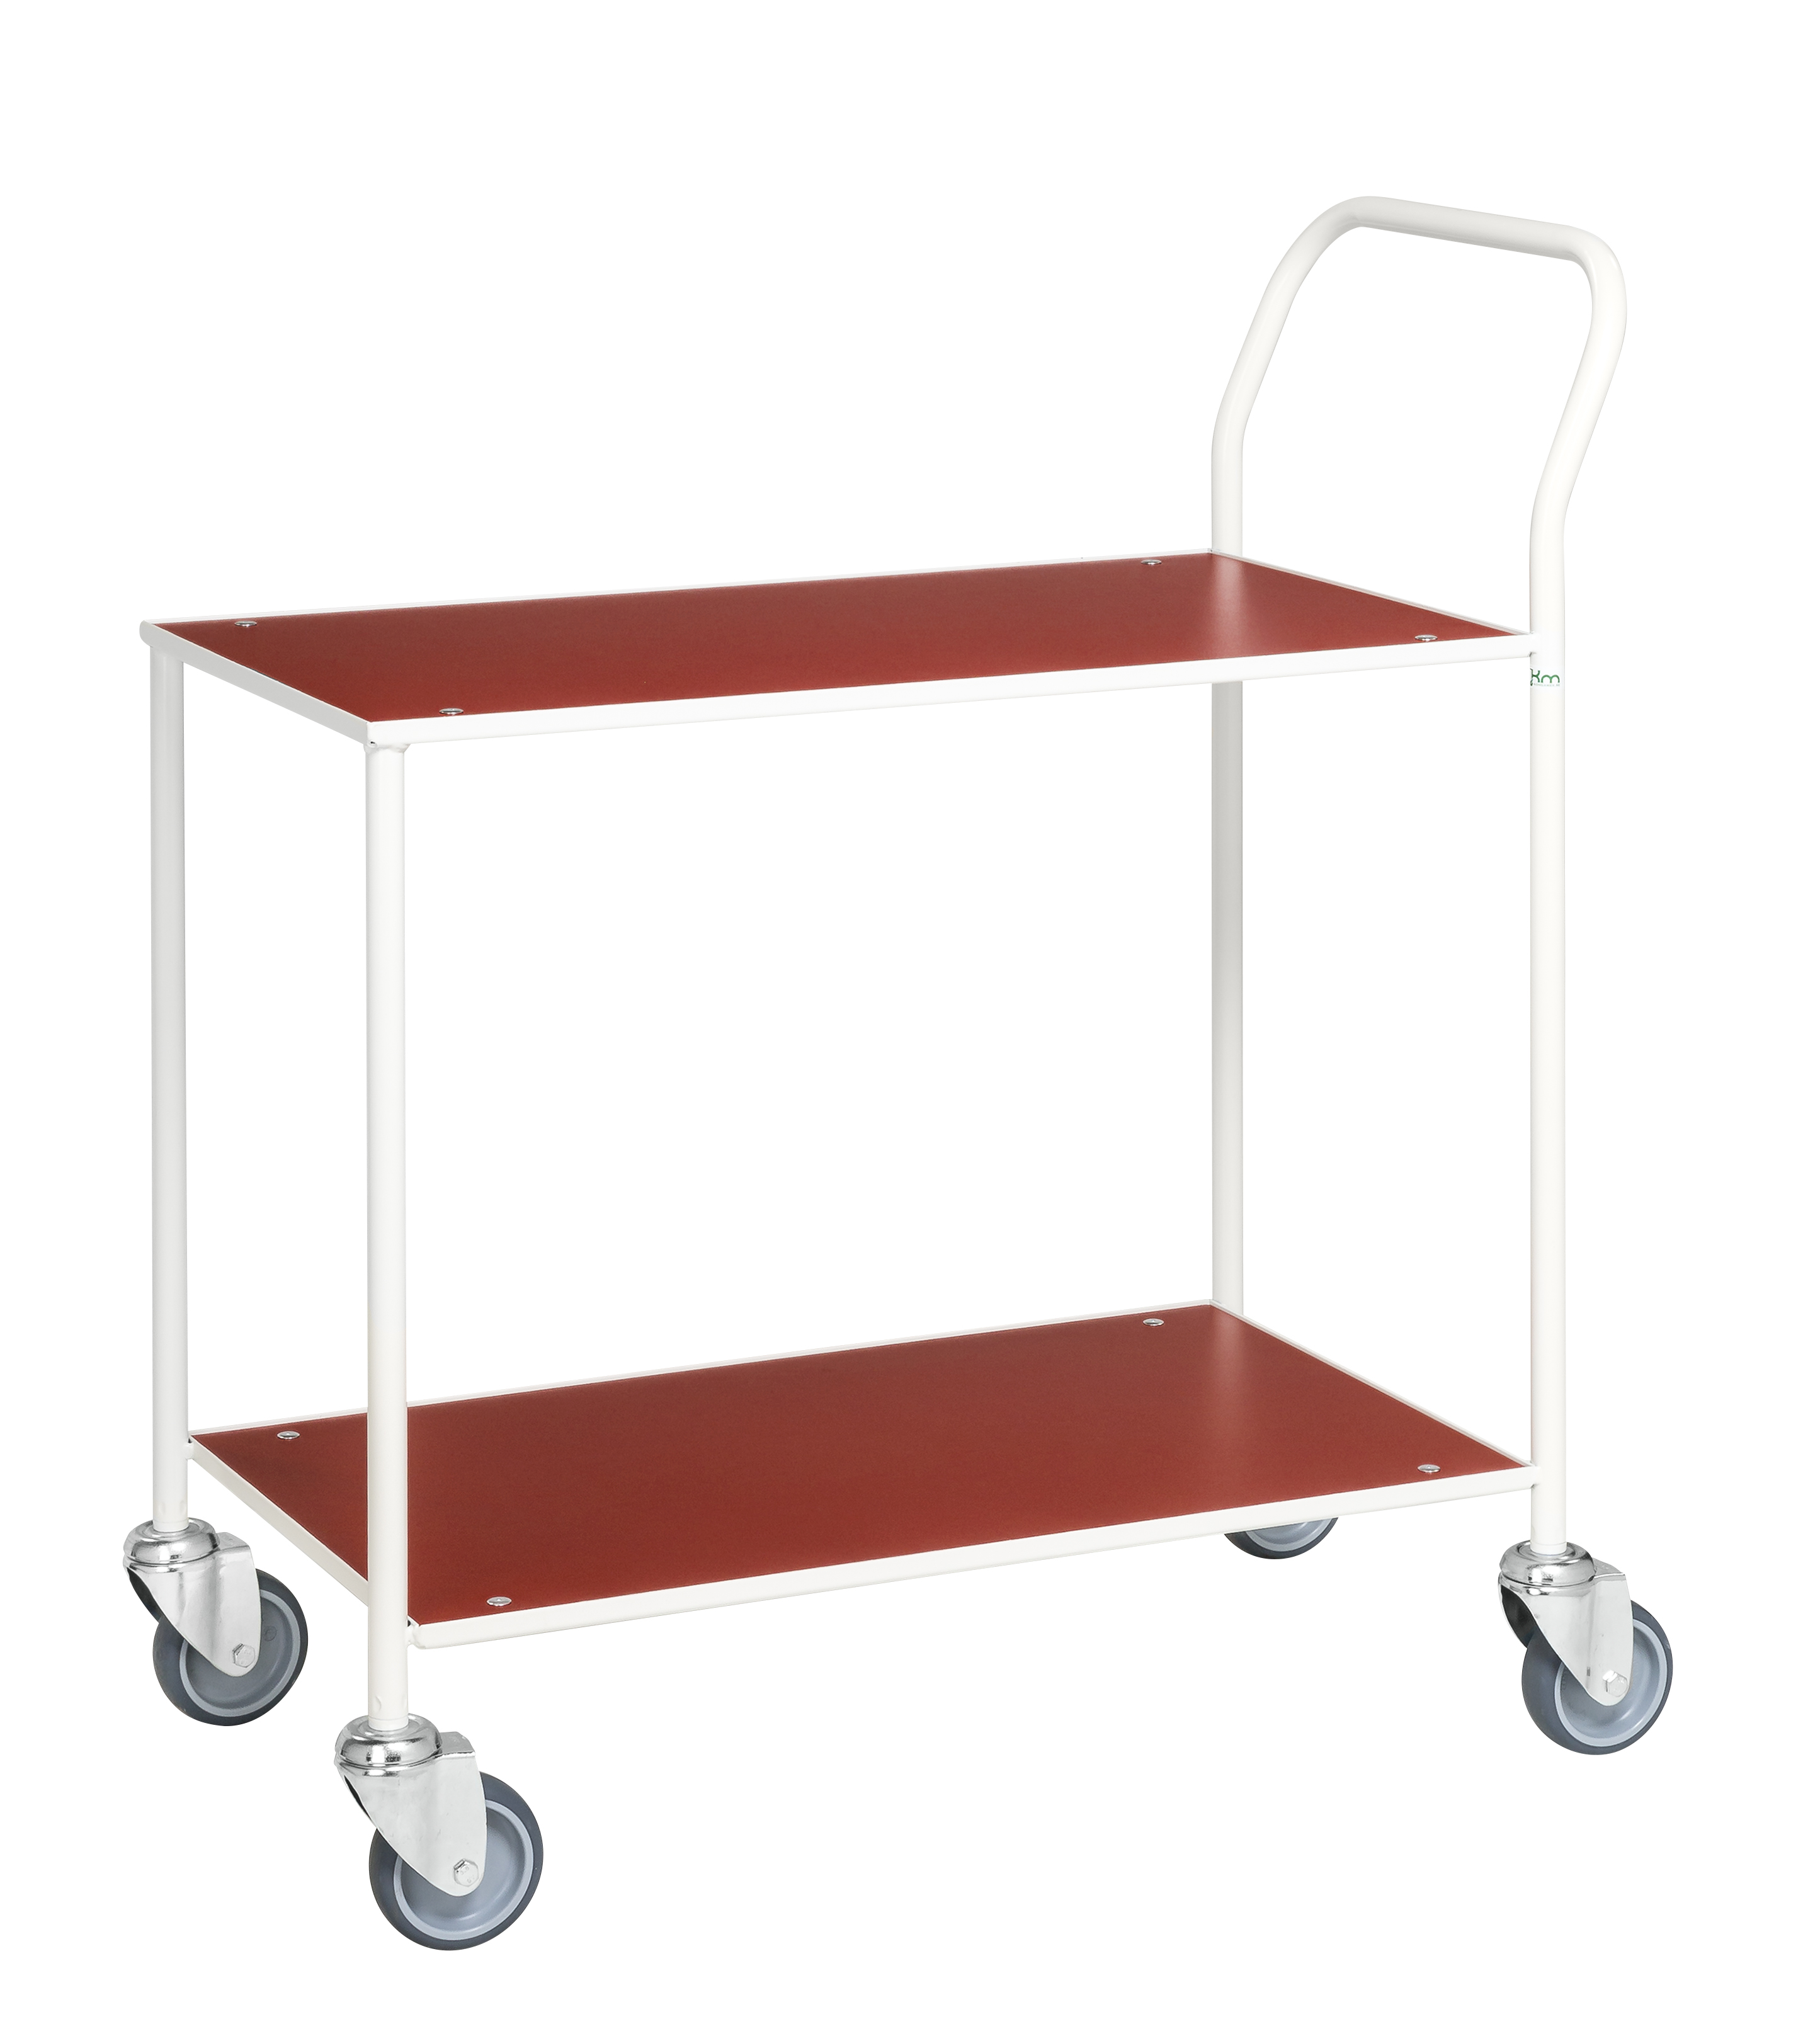 Small table trolley, fully welded KM173-1